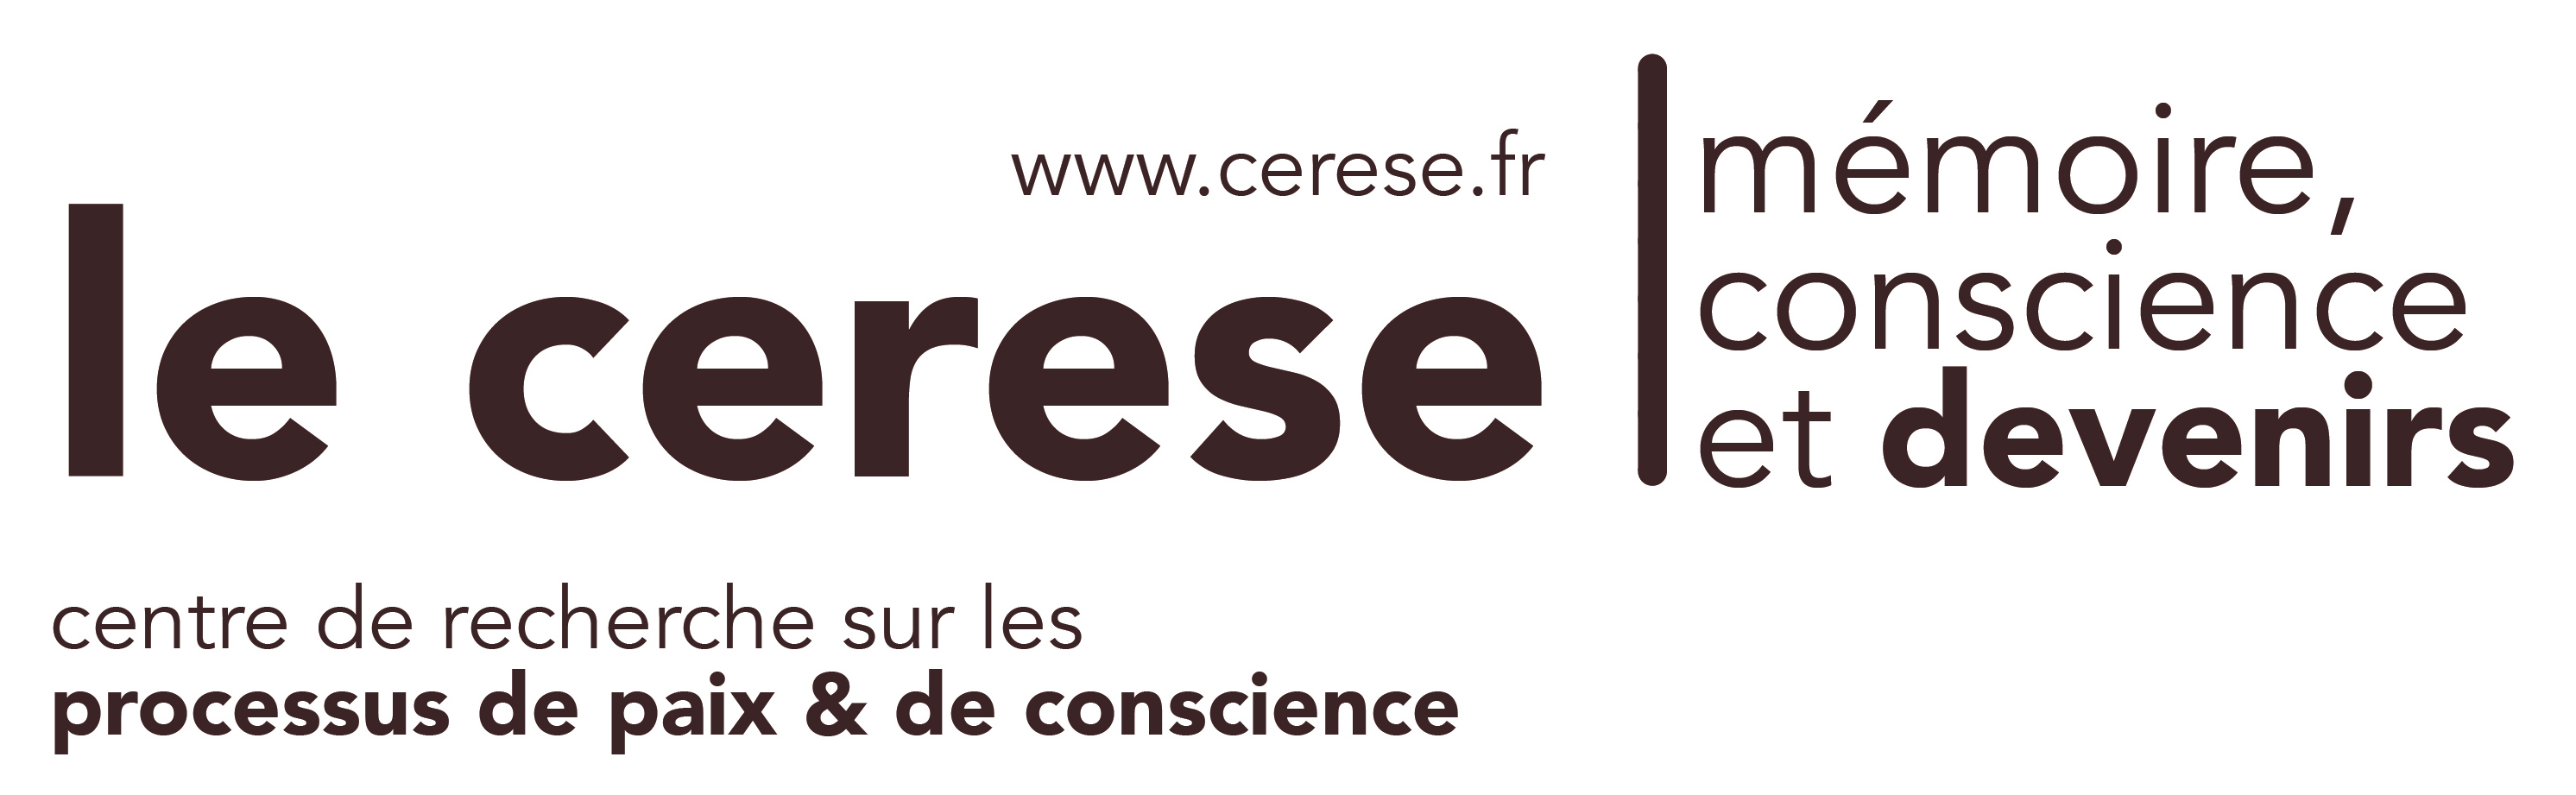 Le Cerese. Sophrologie, CD audio, consultations, ateliers.